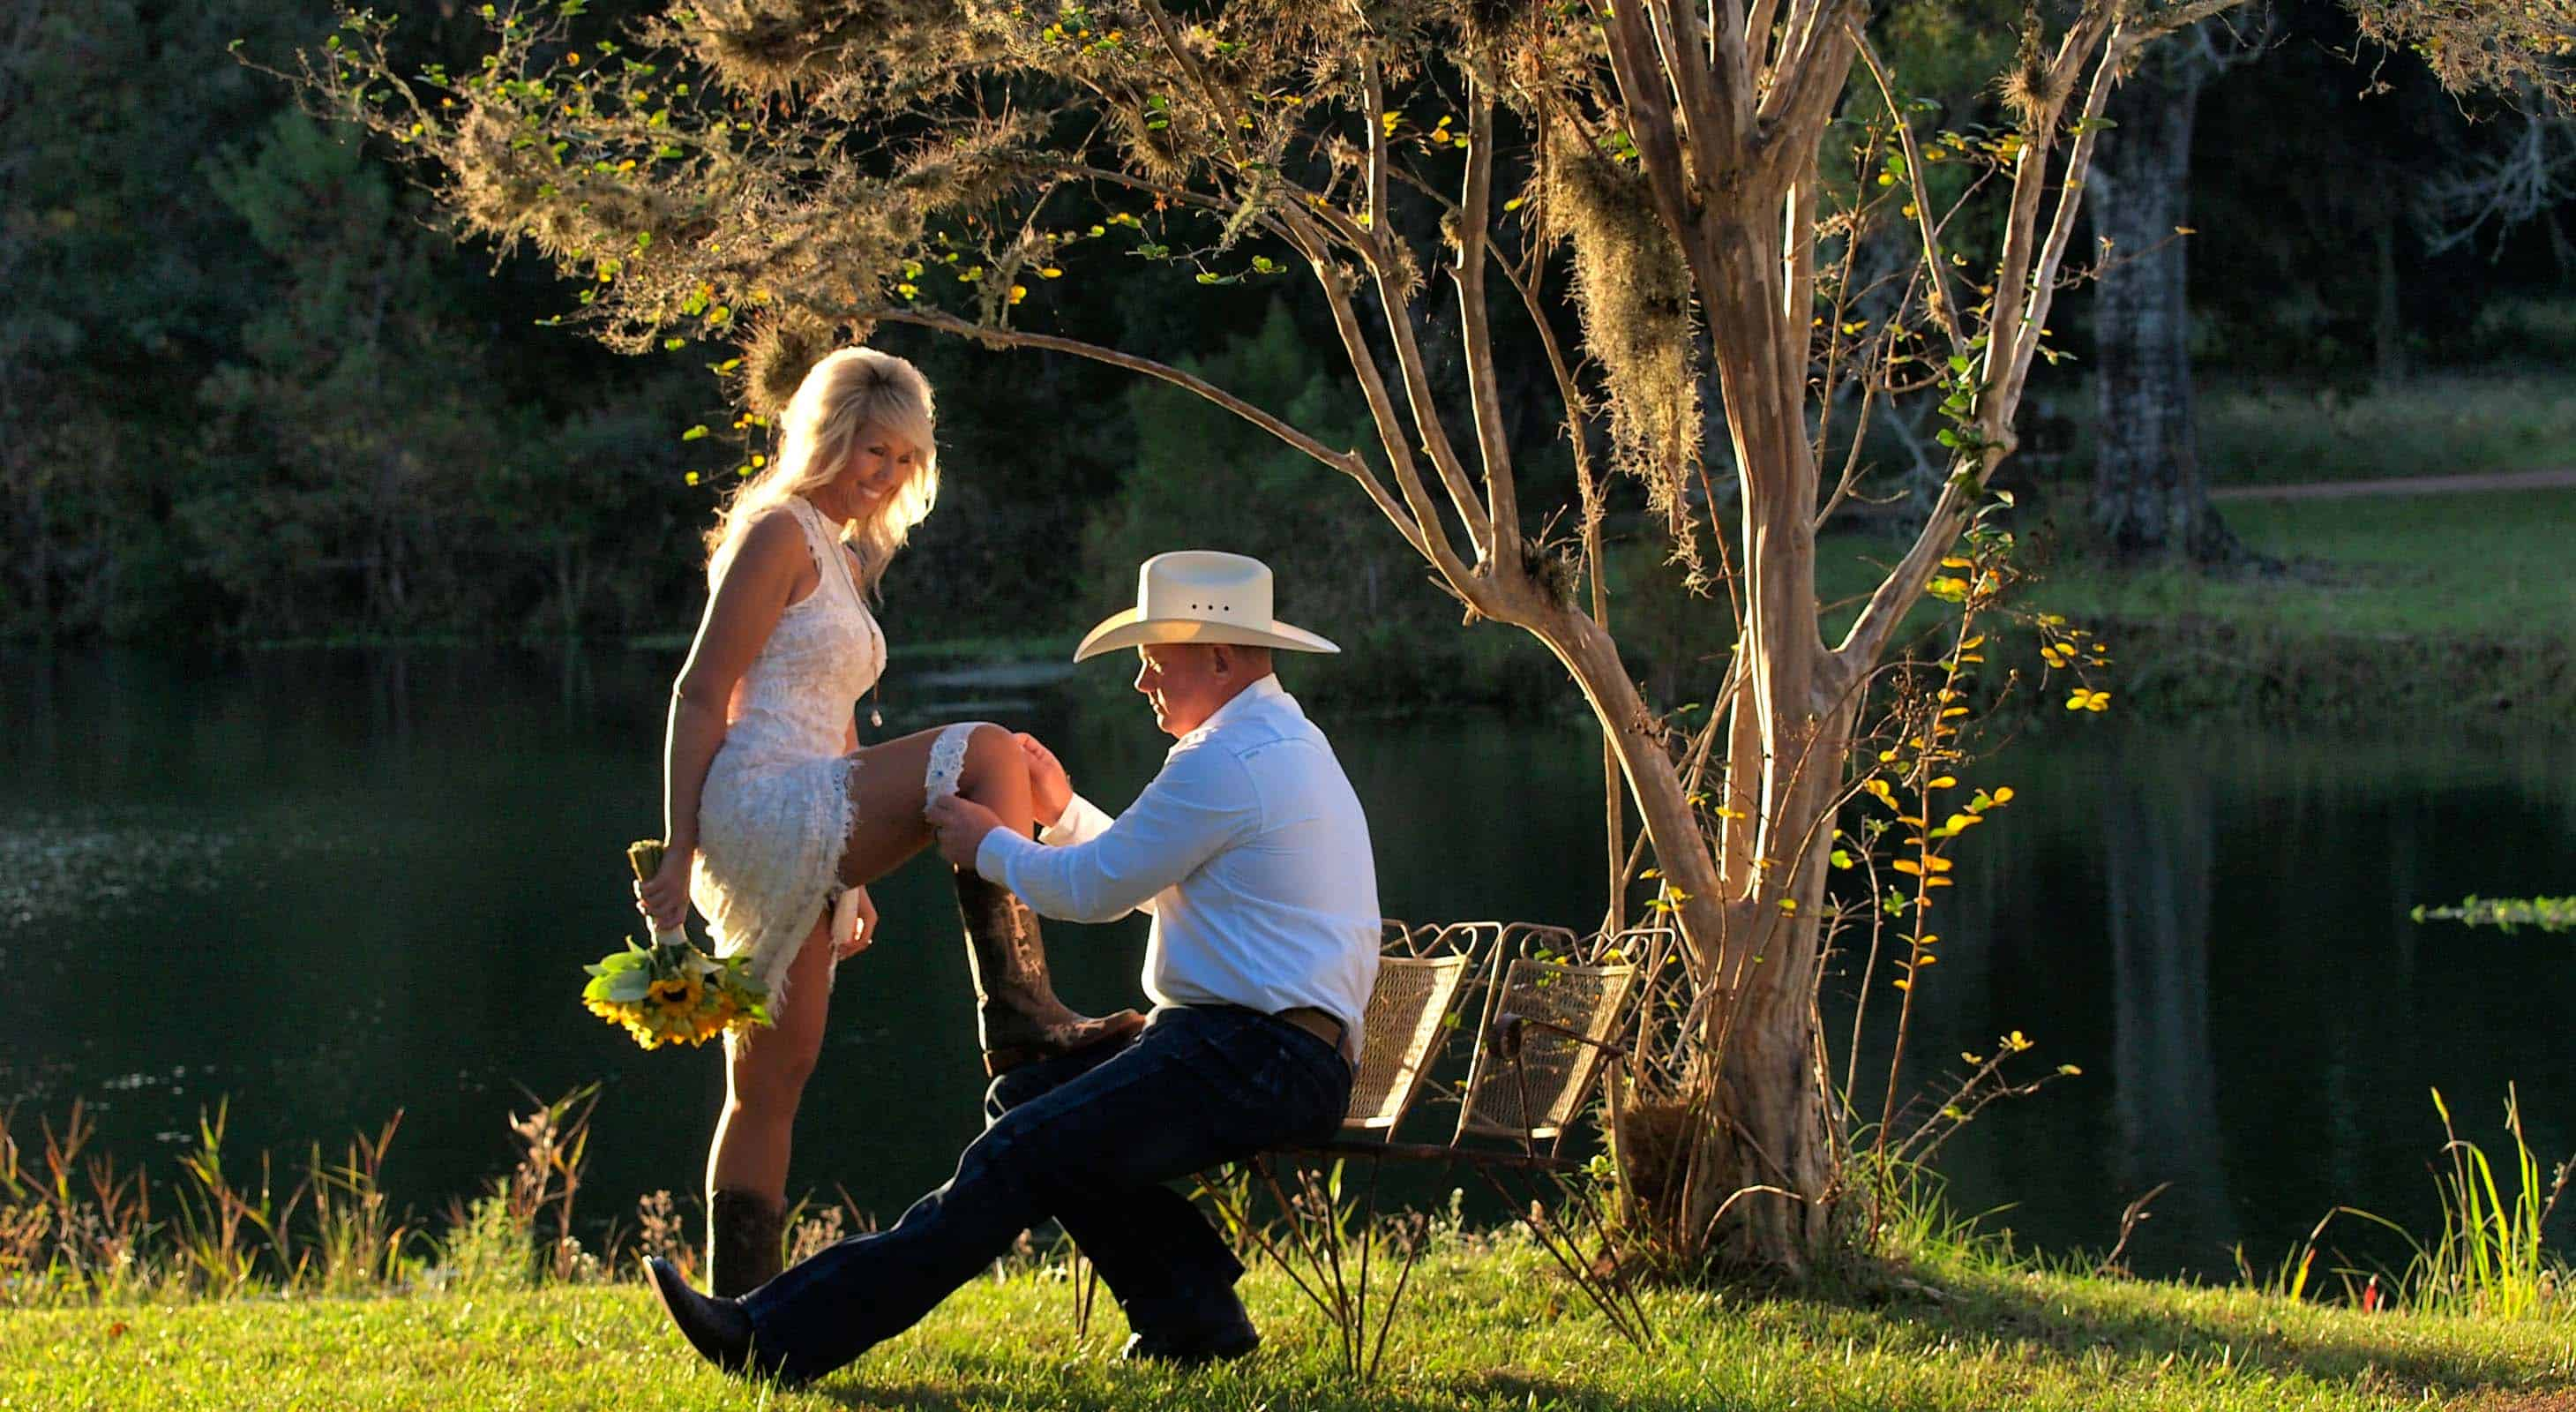 Groom wearing a cowboy hat takes off garter from wife in front of a lake